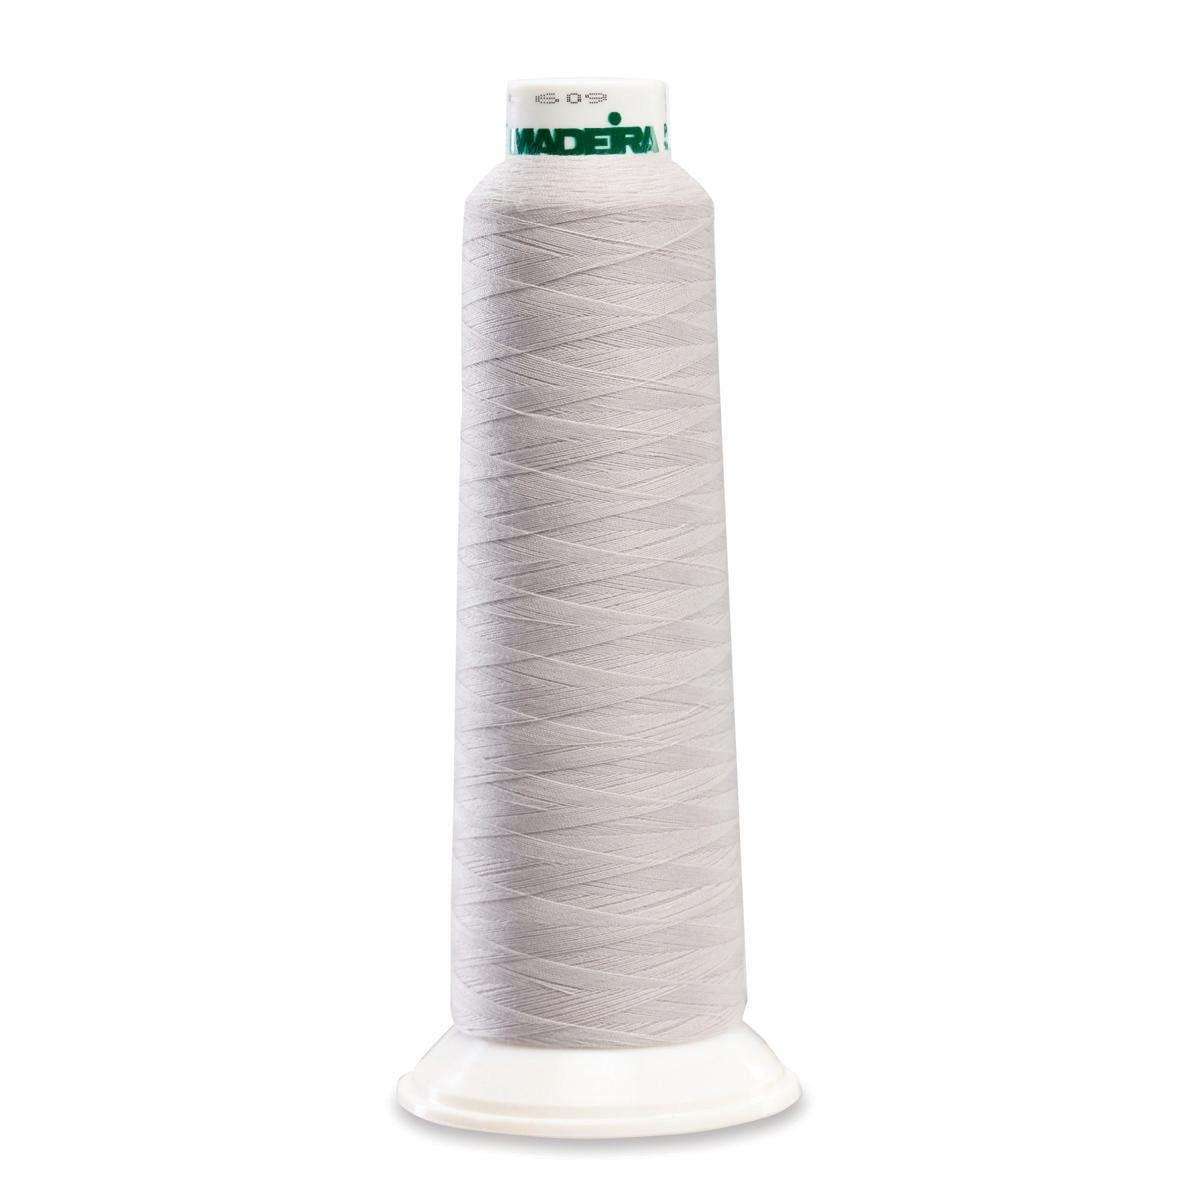 Madeira Serger Thread - Silver